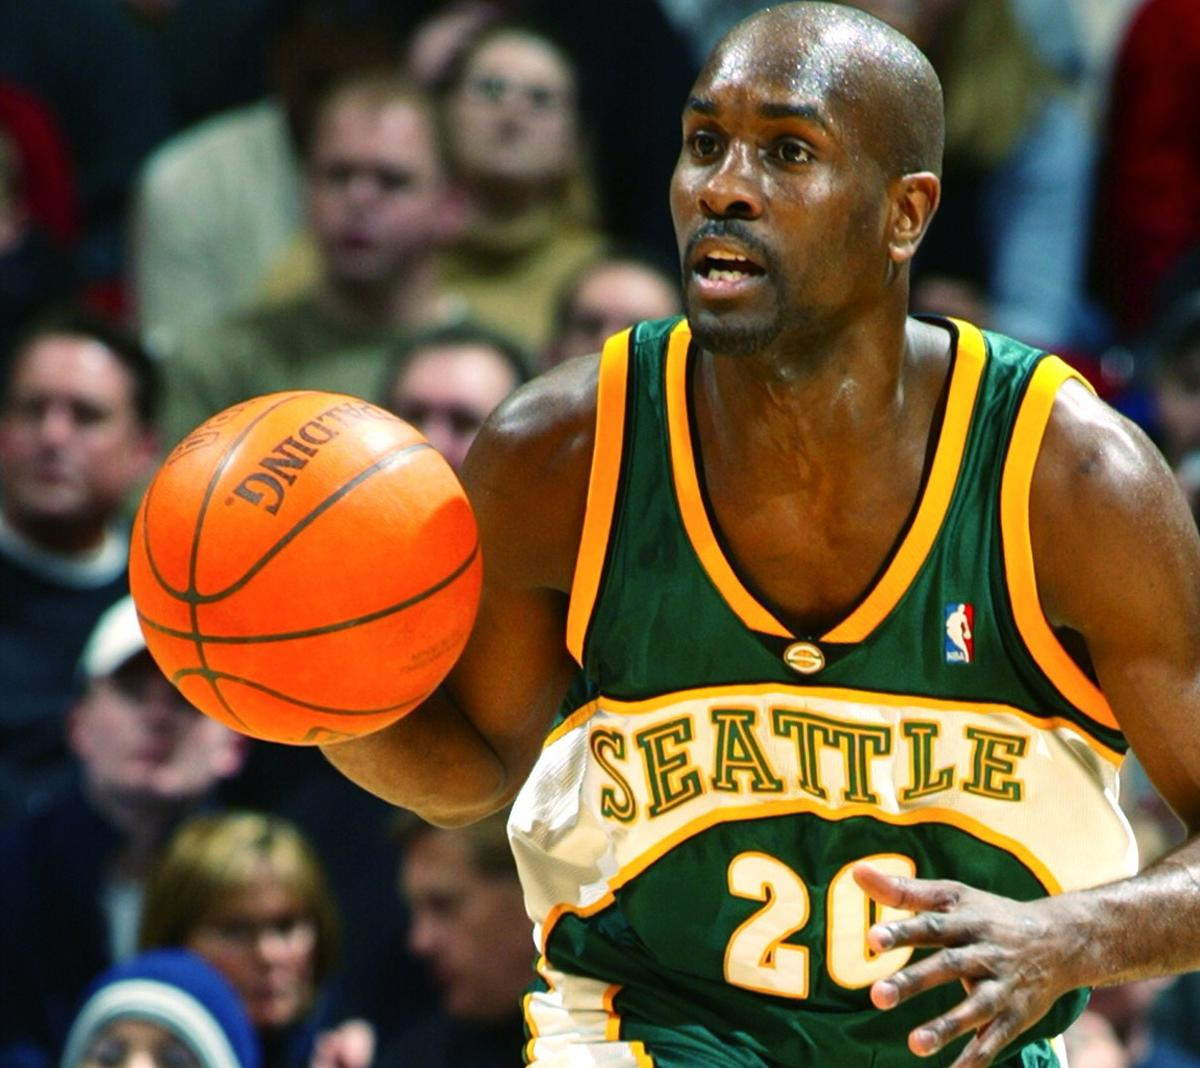 Basketball Hall Of Fame 2013: Complete List Of Inductees